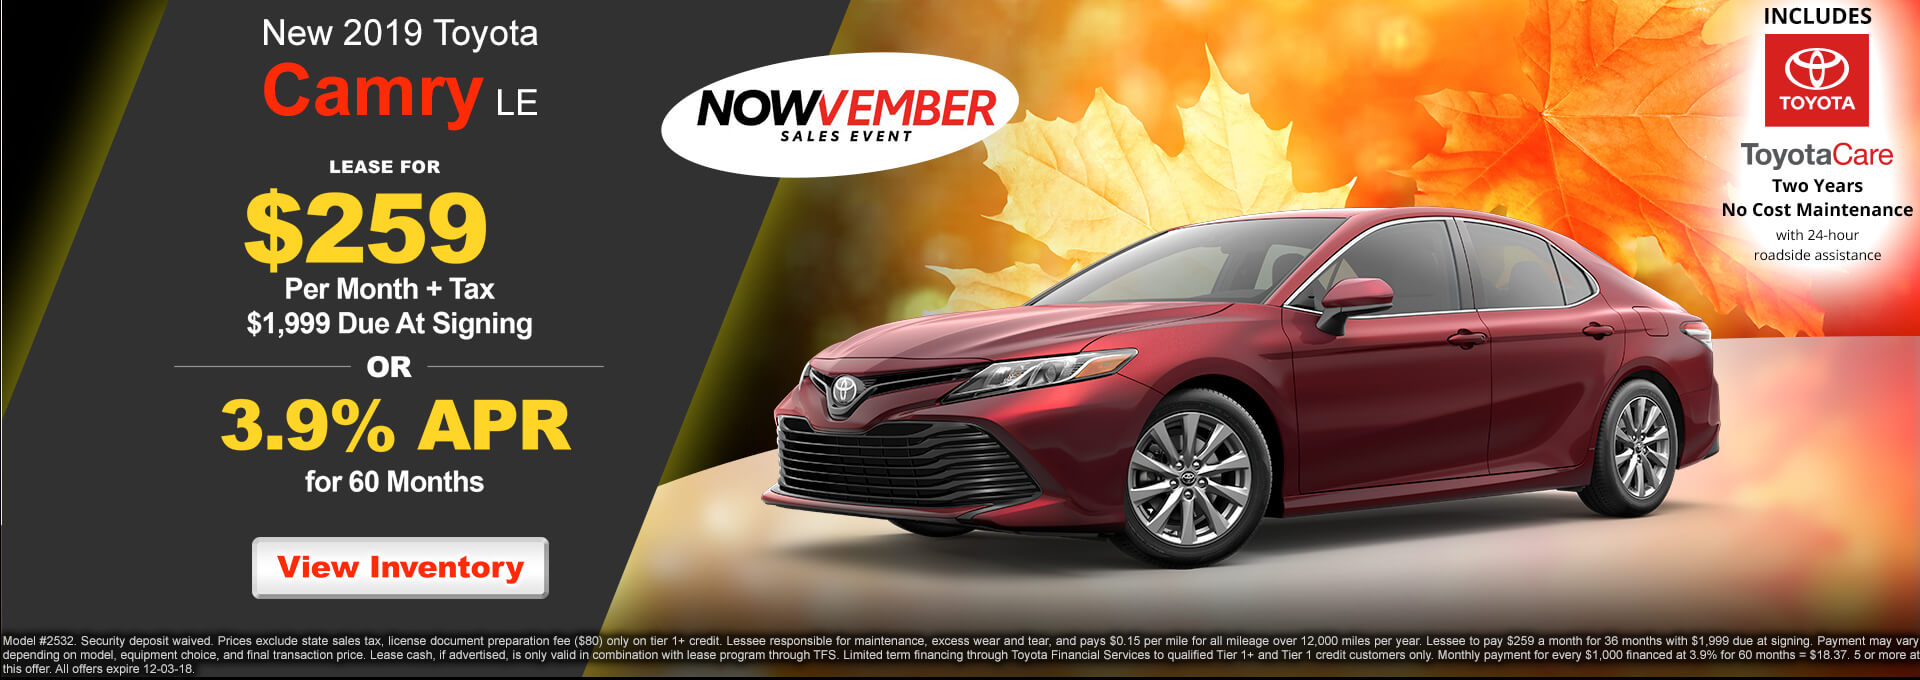 2019 Toyota Camry LE $259